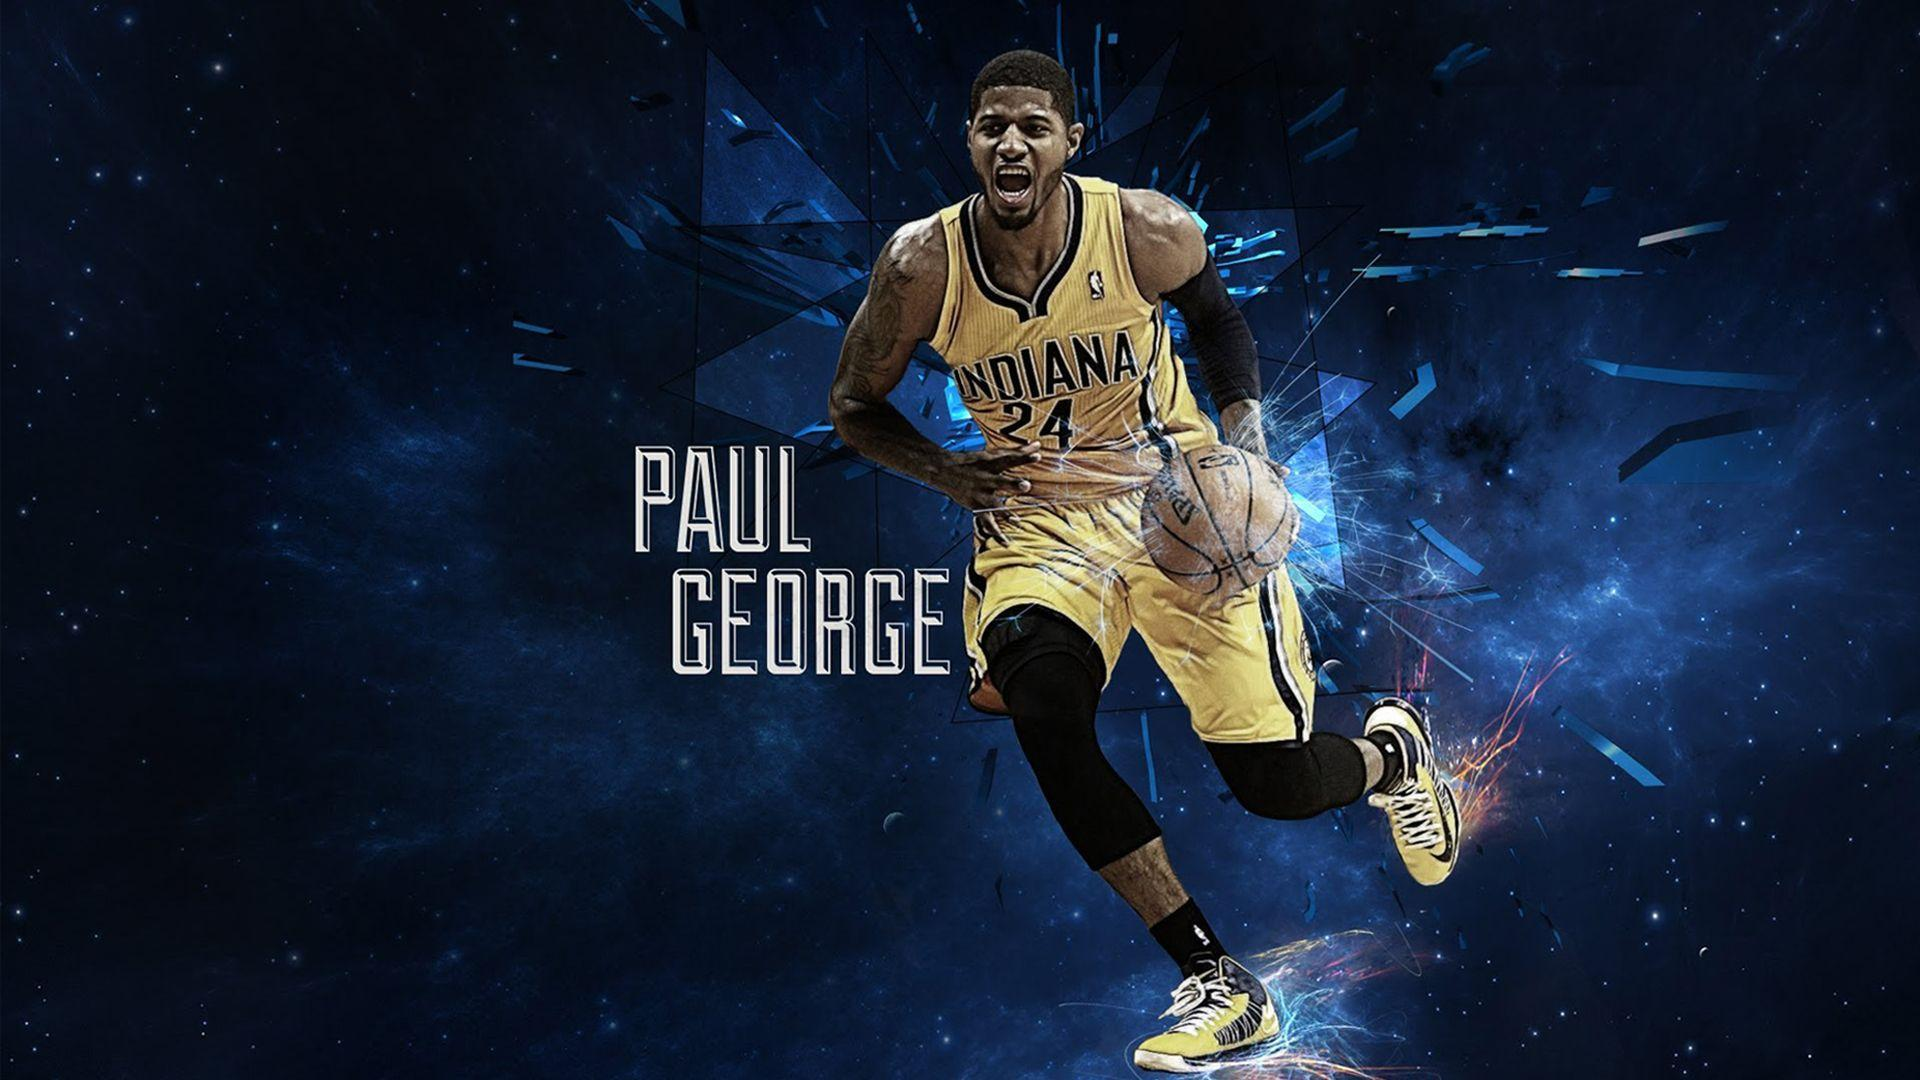 Basketball NBA Wallpapers | HD Wallpapers, Backgrounds, Images ...